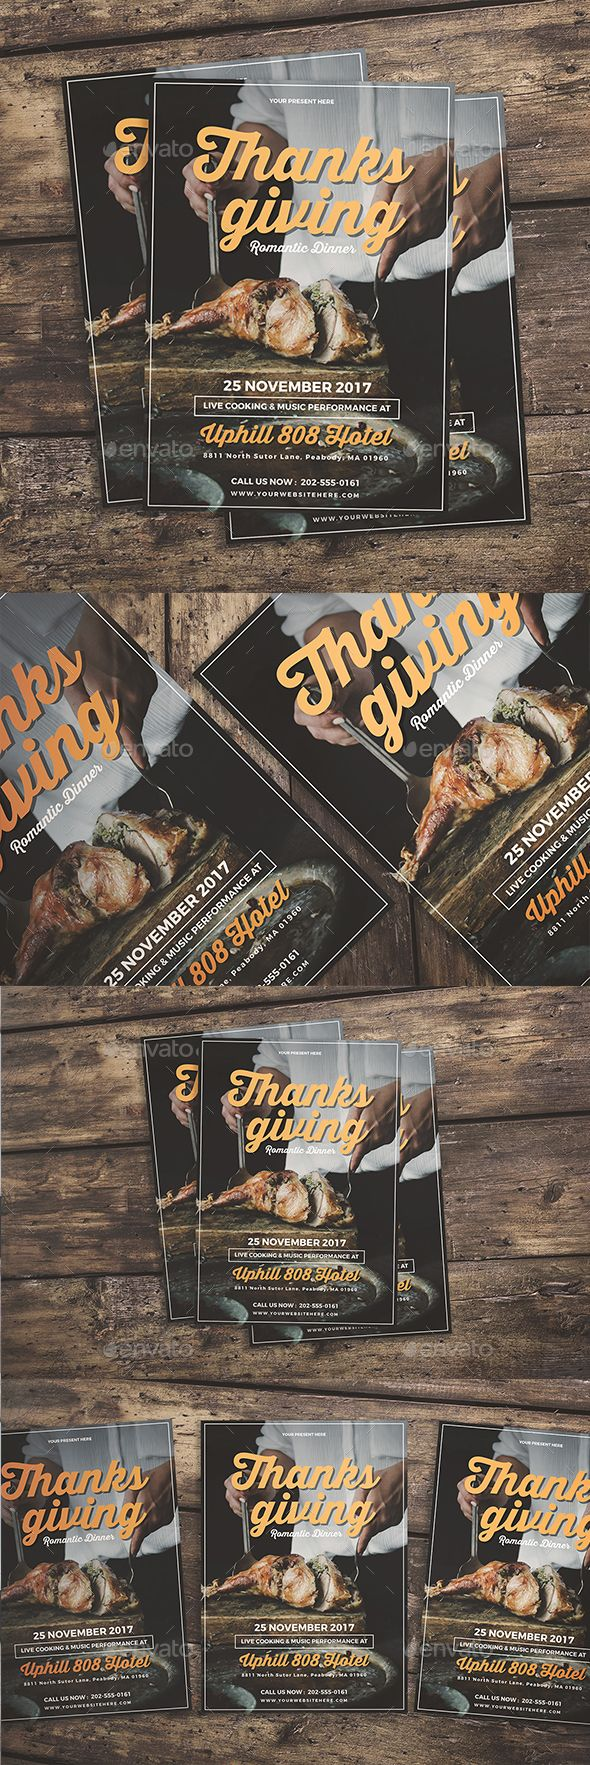 Thanksgiving Dinner Flyer  Font Logo Fonts And Logos